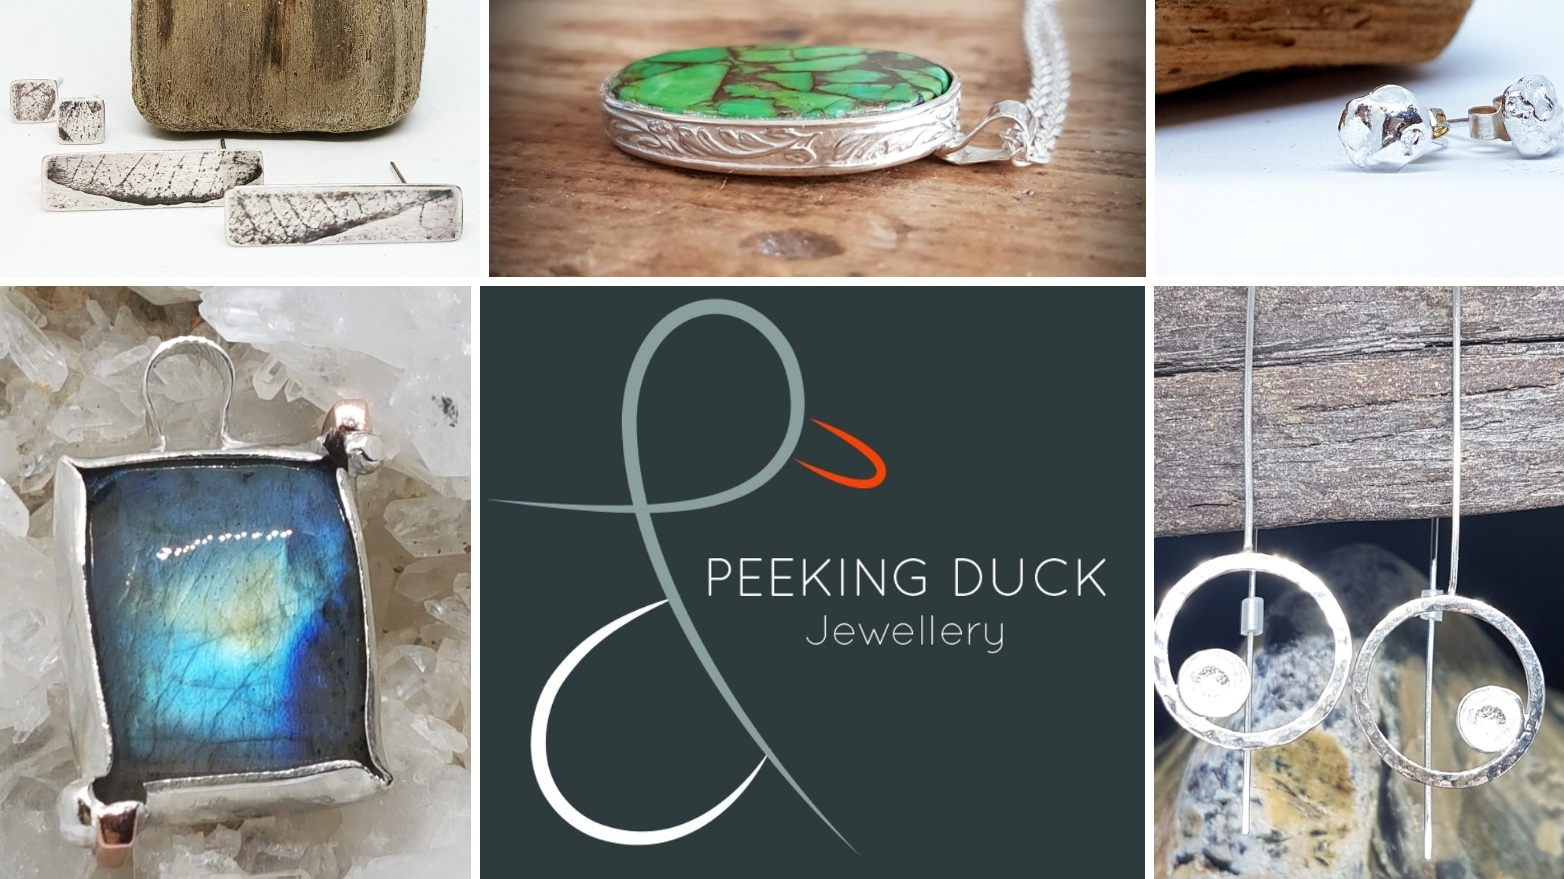 Peeking Duck Ltd - After years working in Asia, the south of UK & London, I decided to go for a radical life change and come out of the corporate world, and set up at home doing something I love. After completing a course at Uni, Peeking Duck was born in 2018. Handmade Silver Jewellery, with a heavy influence from a former life in the Far East and the local Dorset countryside. - Natalie, Director & DesignerThere comes a point in life where you feel the need for change. Somethings will nudge you, others will inspire you. I came to that point 2 1/2 years ago, and although I was happy in what I was doing, I felt the need to try something completely different. After completing a course at Uni, I fell in love with silversmithing and started to make a few things, buy new tools, notice more inspirations. With a heavy influence of a past life living and working in Asia, and the beautiful surrounding coastline and forests I started to design and before I knew it, was bitten by the bug of 'The Maker'. I love what I do, and feel more rewarded than ever when a piece you have made brings a smile or a tear of joy. I feel truly blessed to be able to do this and purchase all my silver from bullion and reputable suppliers. I am now a registered jeweller in the UK, and with my hallmark registered, am a fully fledged jewellery maker.